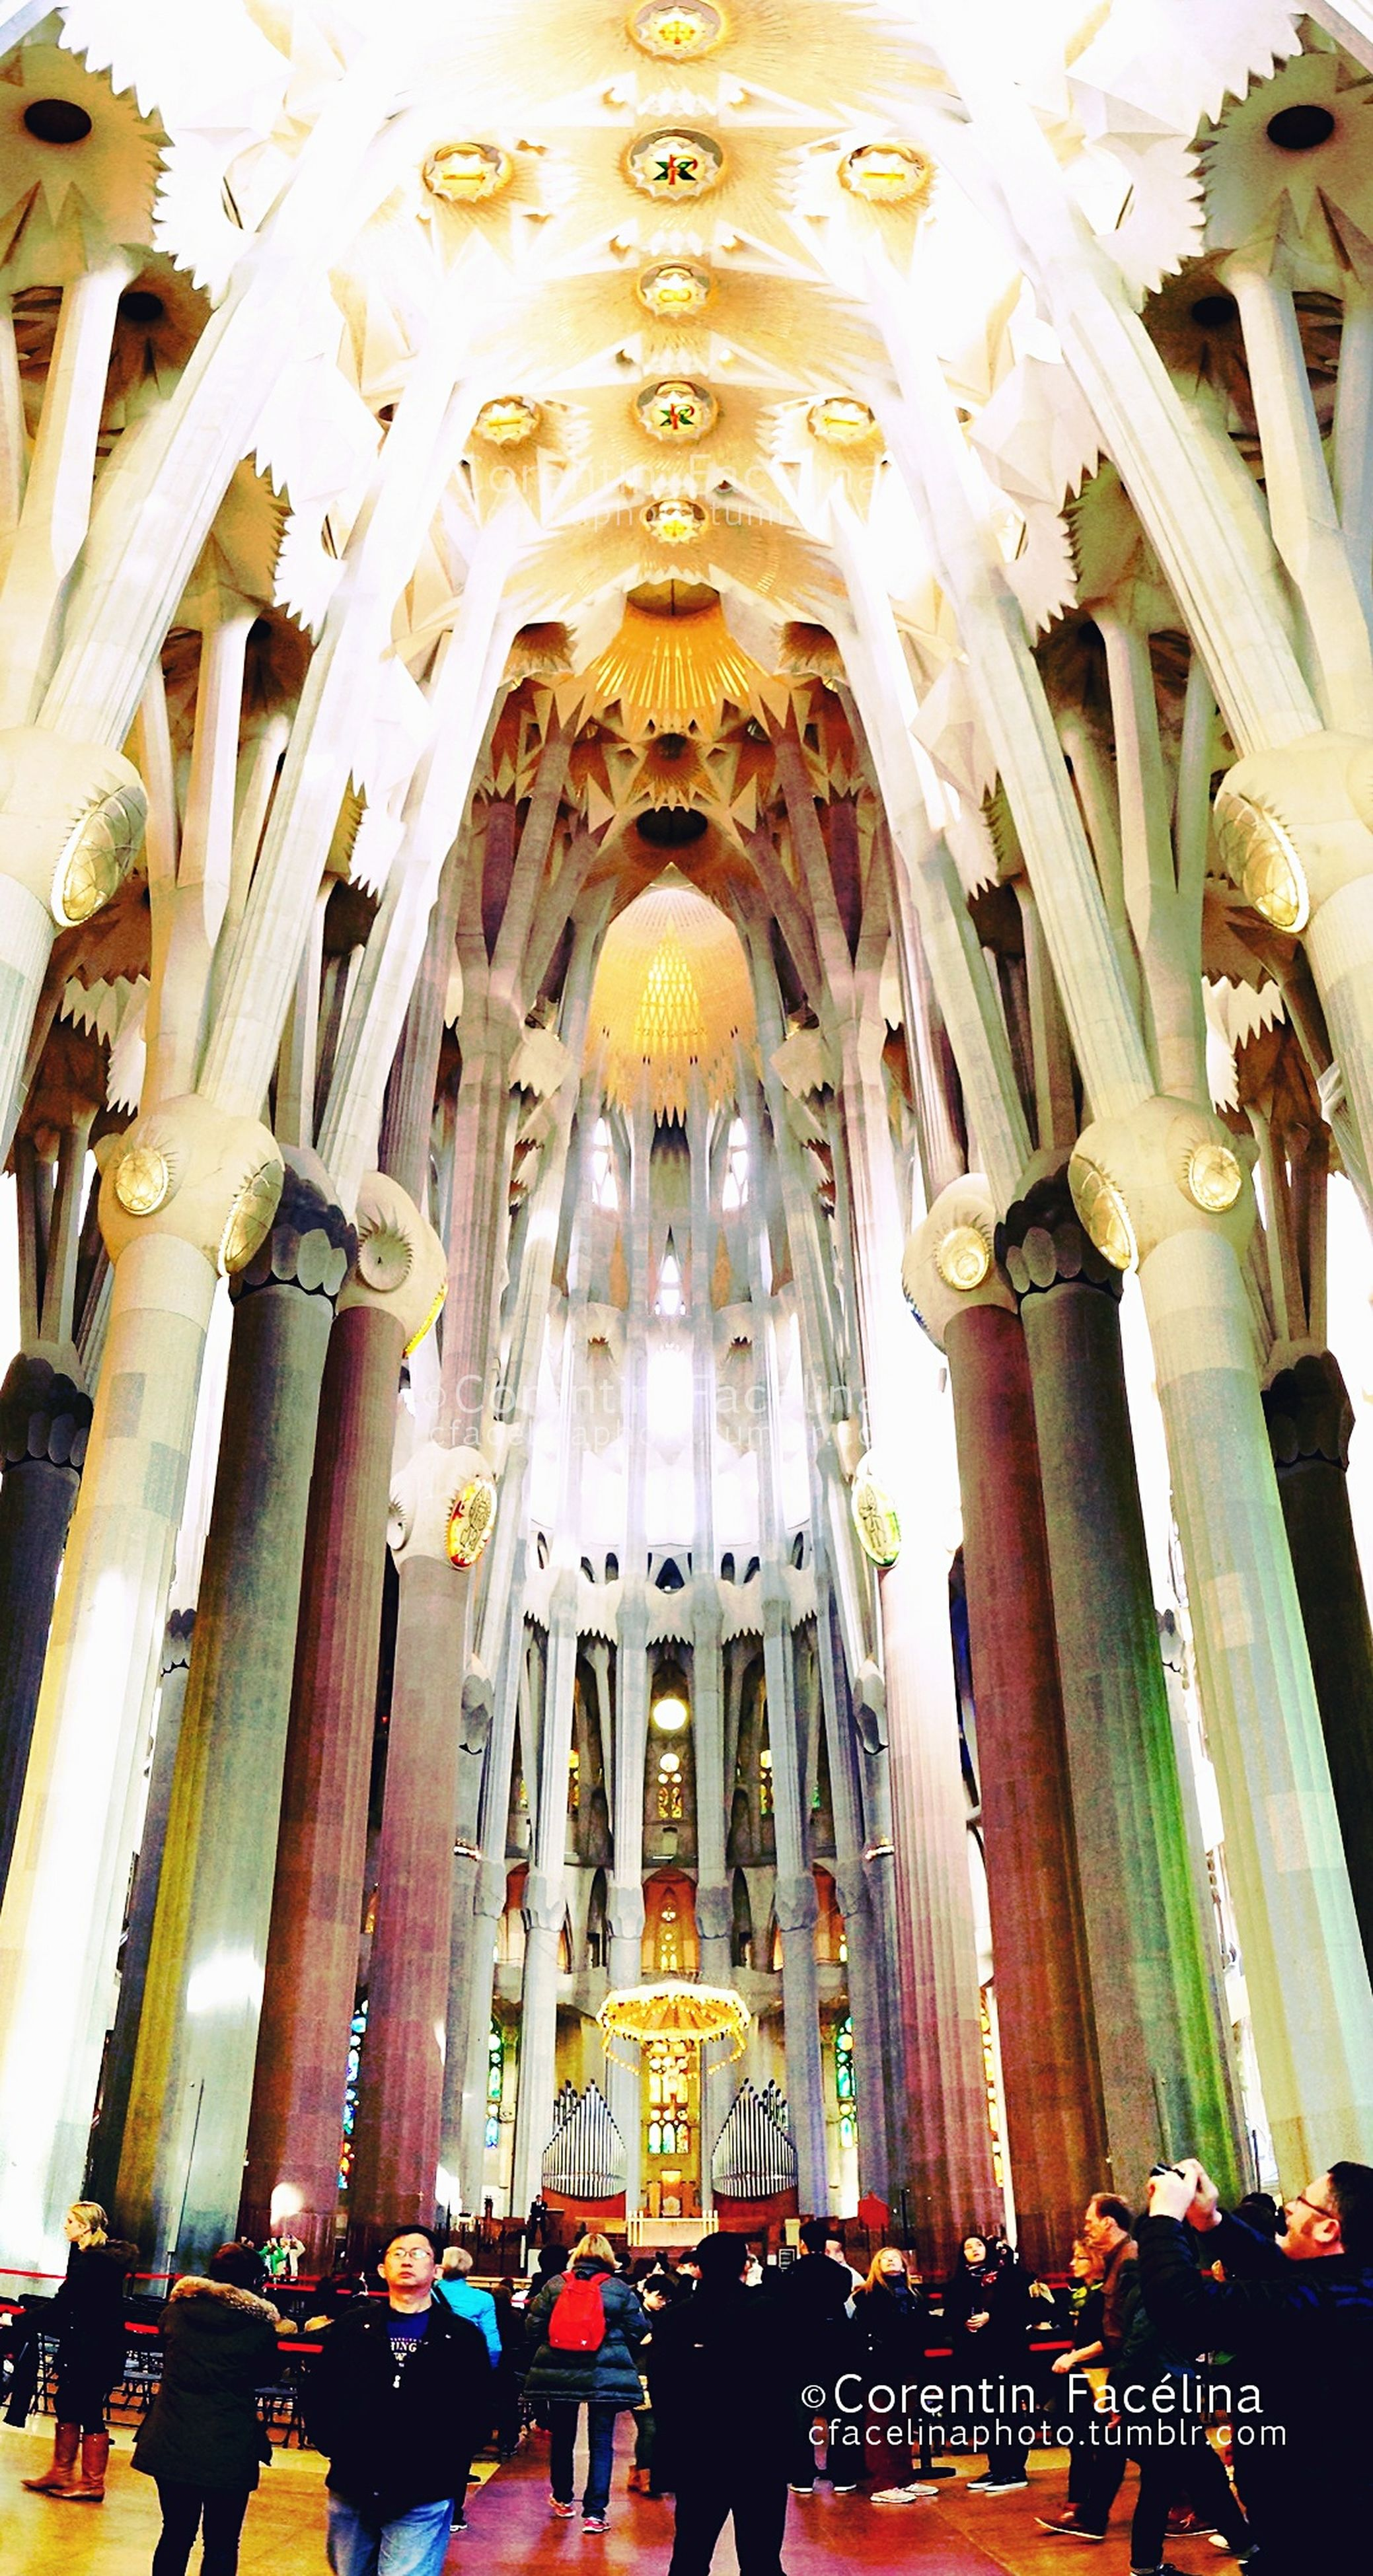 religion, place of worship, spirituality, indoors, church, architecture, low angle view, built structure, cathedral, famous place, travel destinations, tourism, arch, islam, ceiling, illuminated, ornate, chandelier